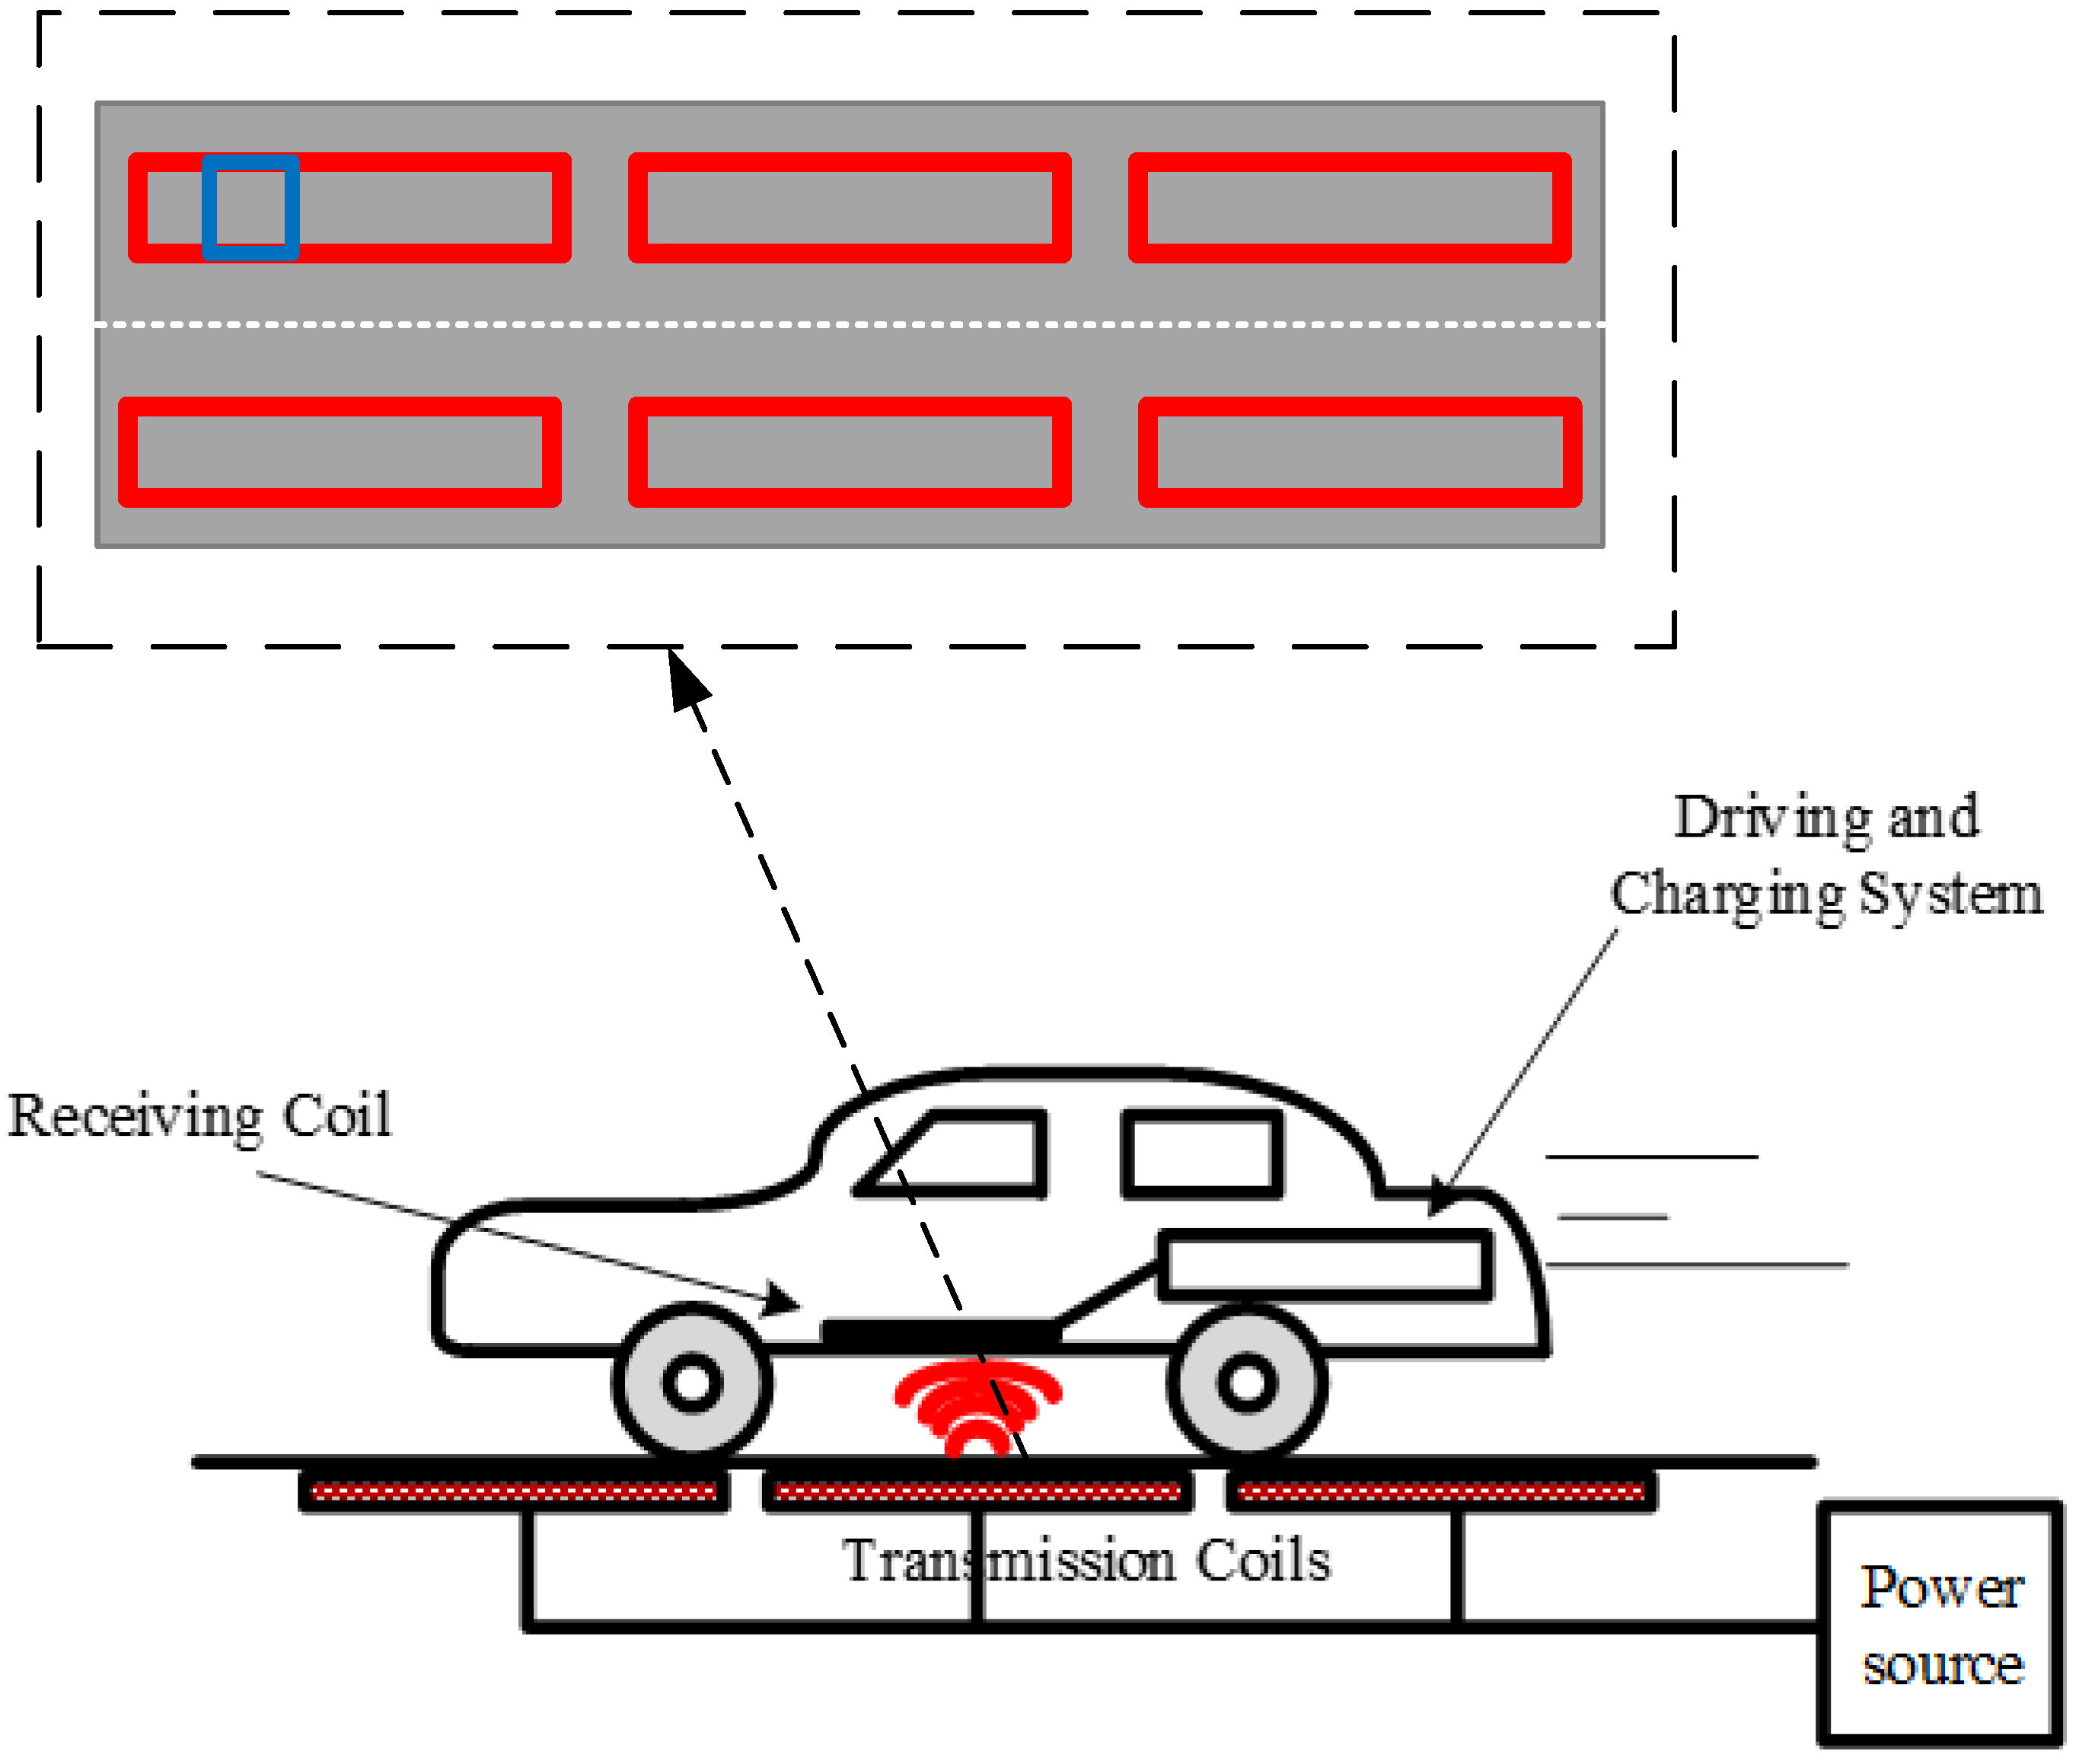 wireless power transfer for electric vehicle applications